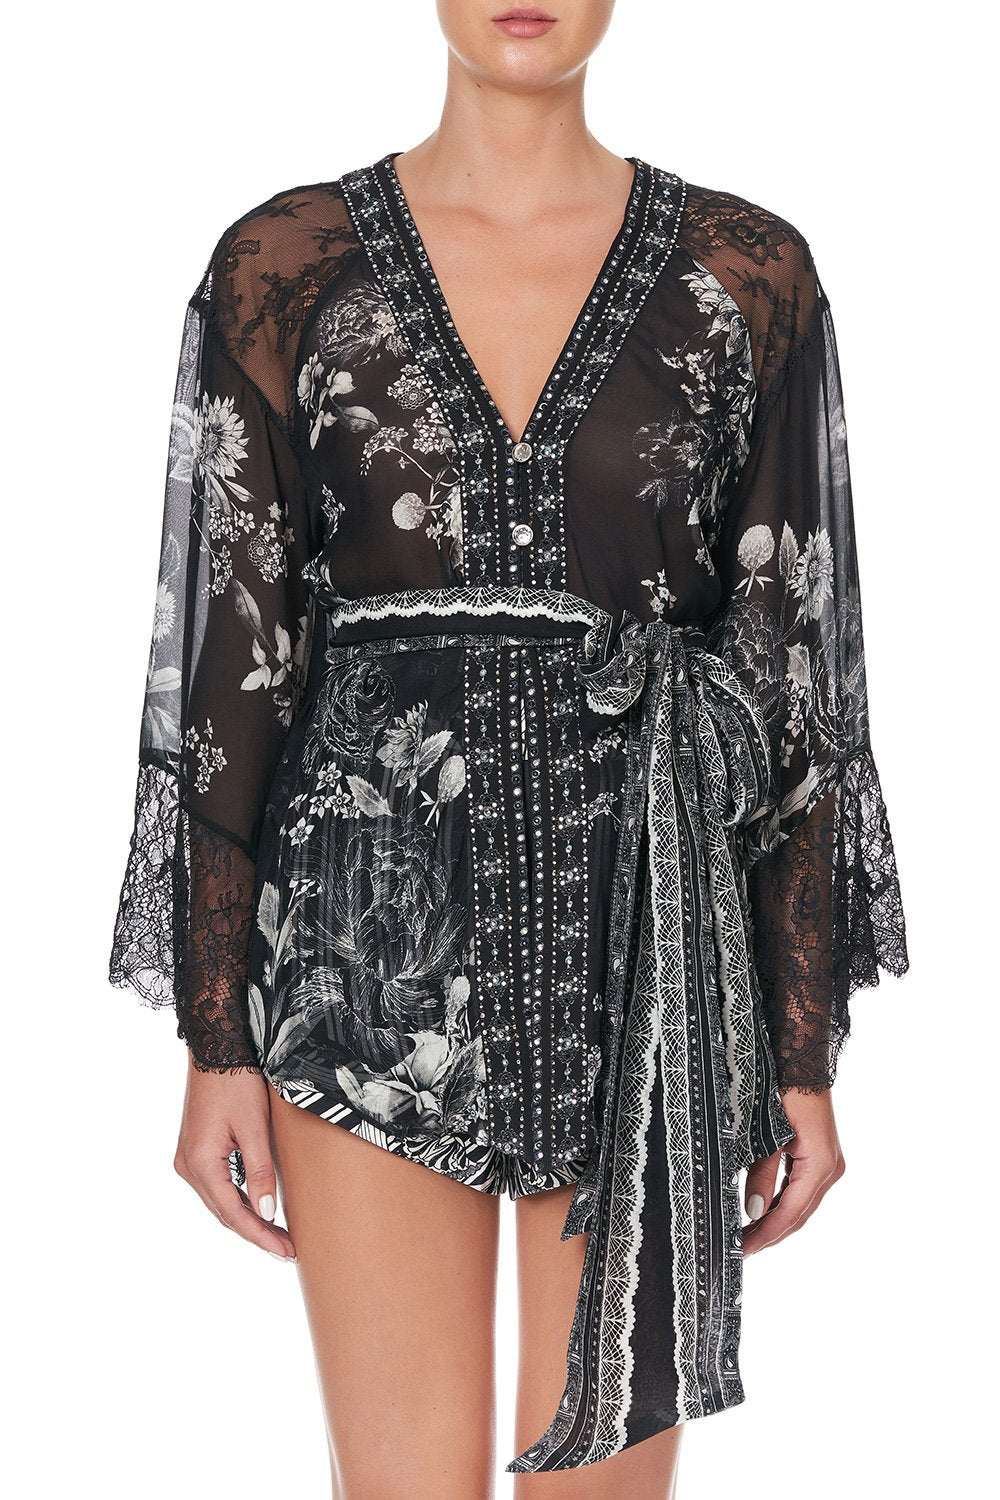 KIMONO WITH SHOULDER INSERTS MOONSHINE BLOOM